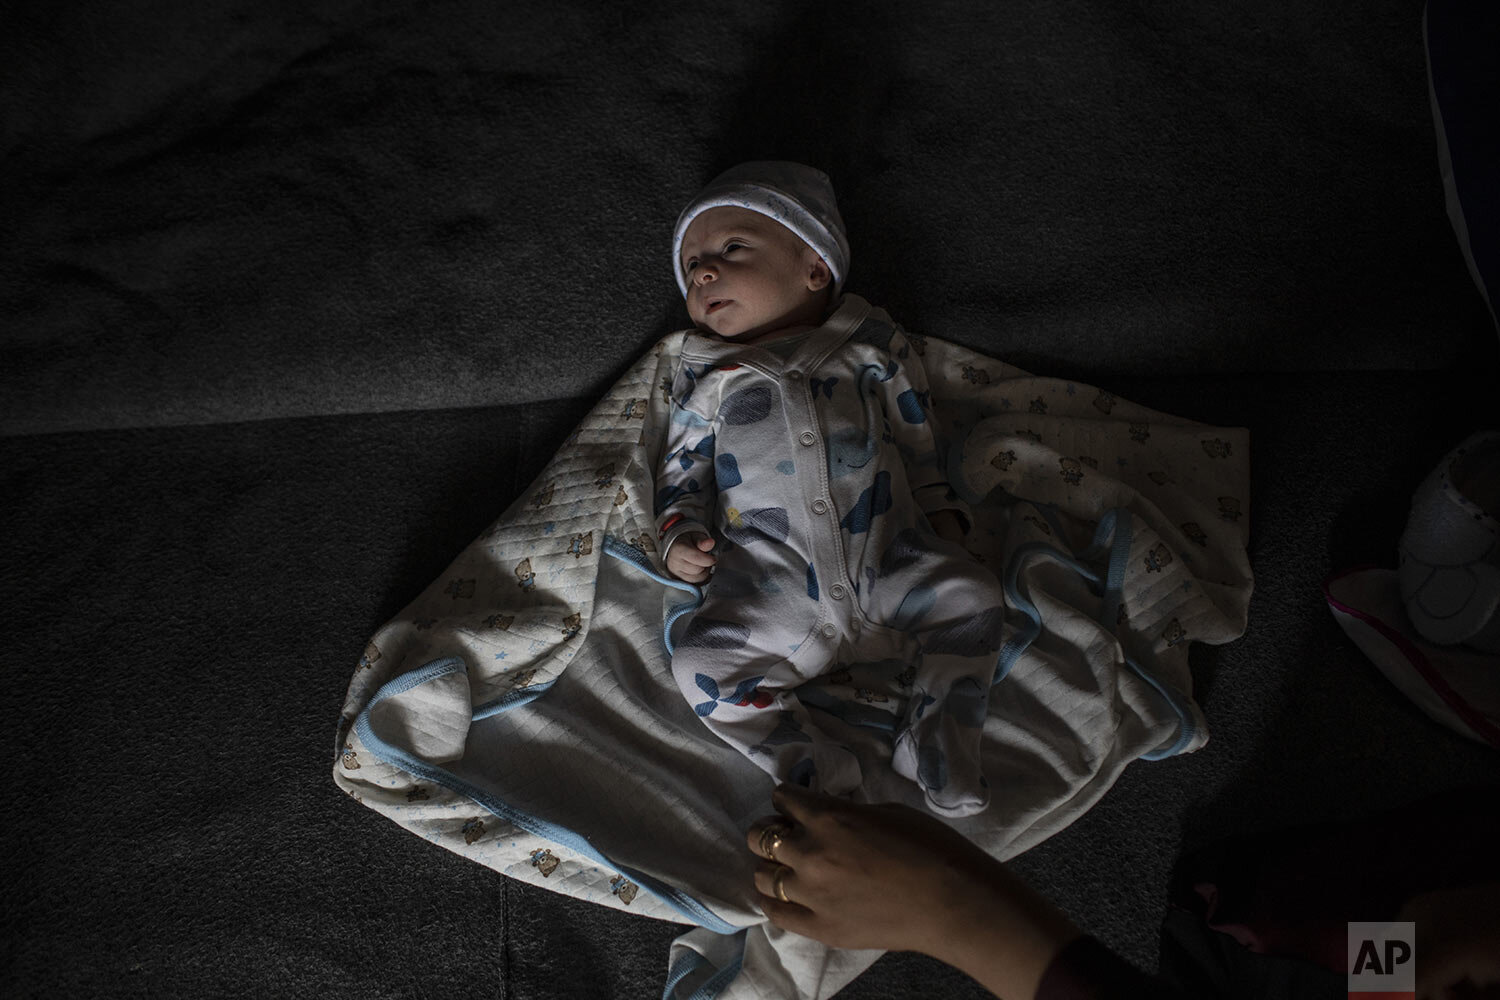 Six day-old Mohamed Helale, from Syria, who was born in Greece lays inside a tent at the Moria refugee and migrant camp on the Greek island of Lesbos, Saturday Oct. 5, 2019. ( AP Photo/Petros Giannakouris)